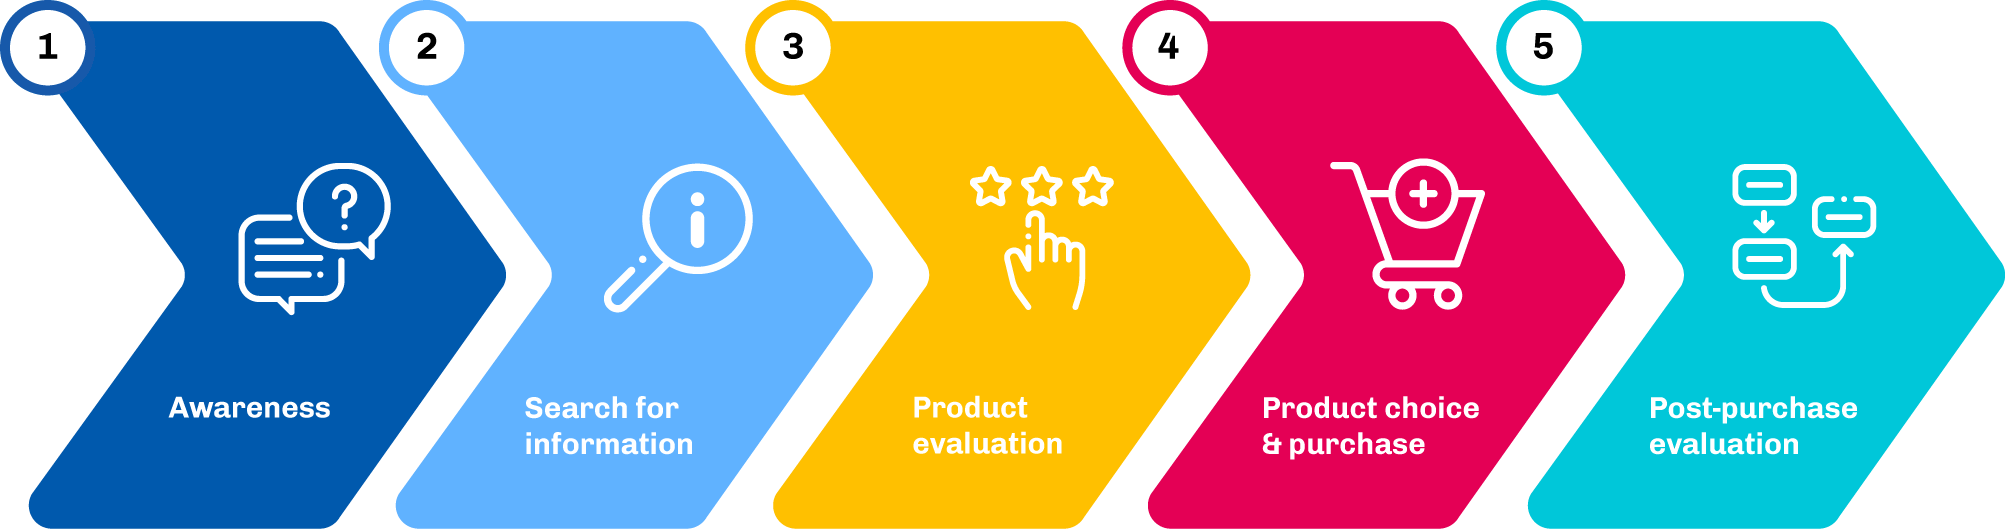 five stages consumer decision process making graphic